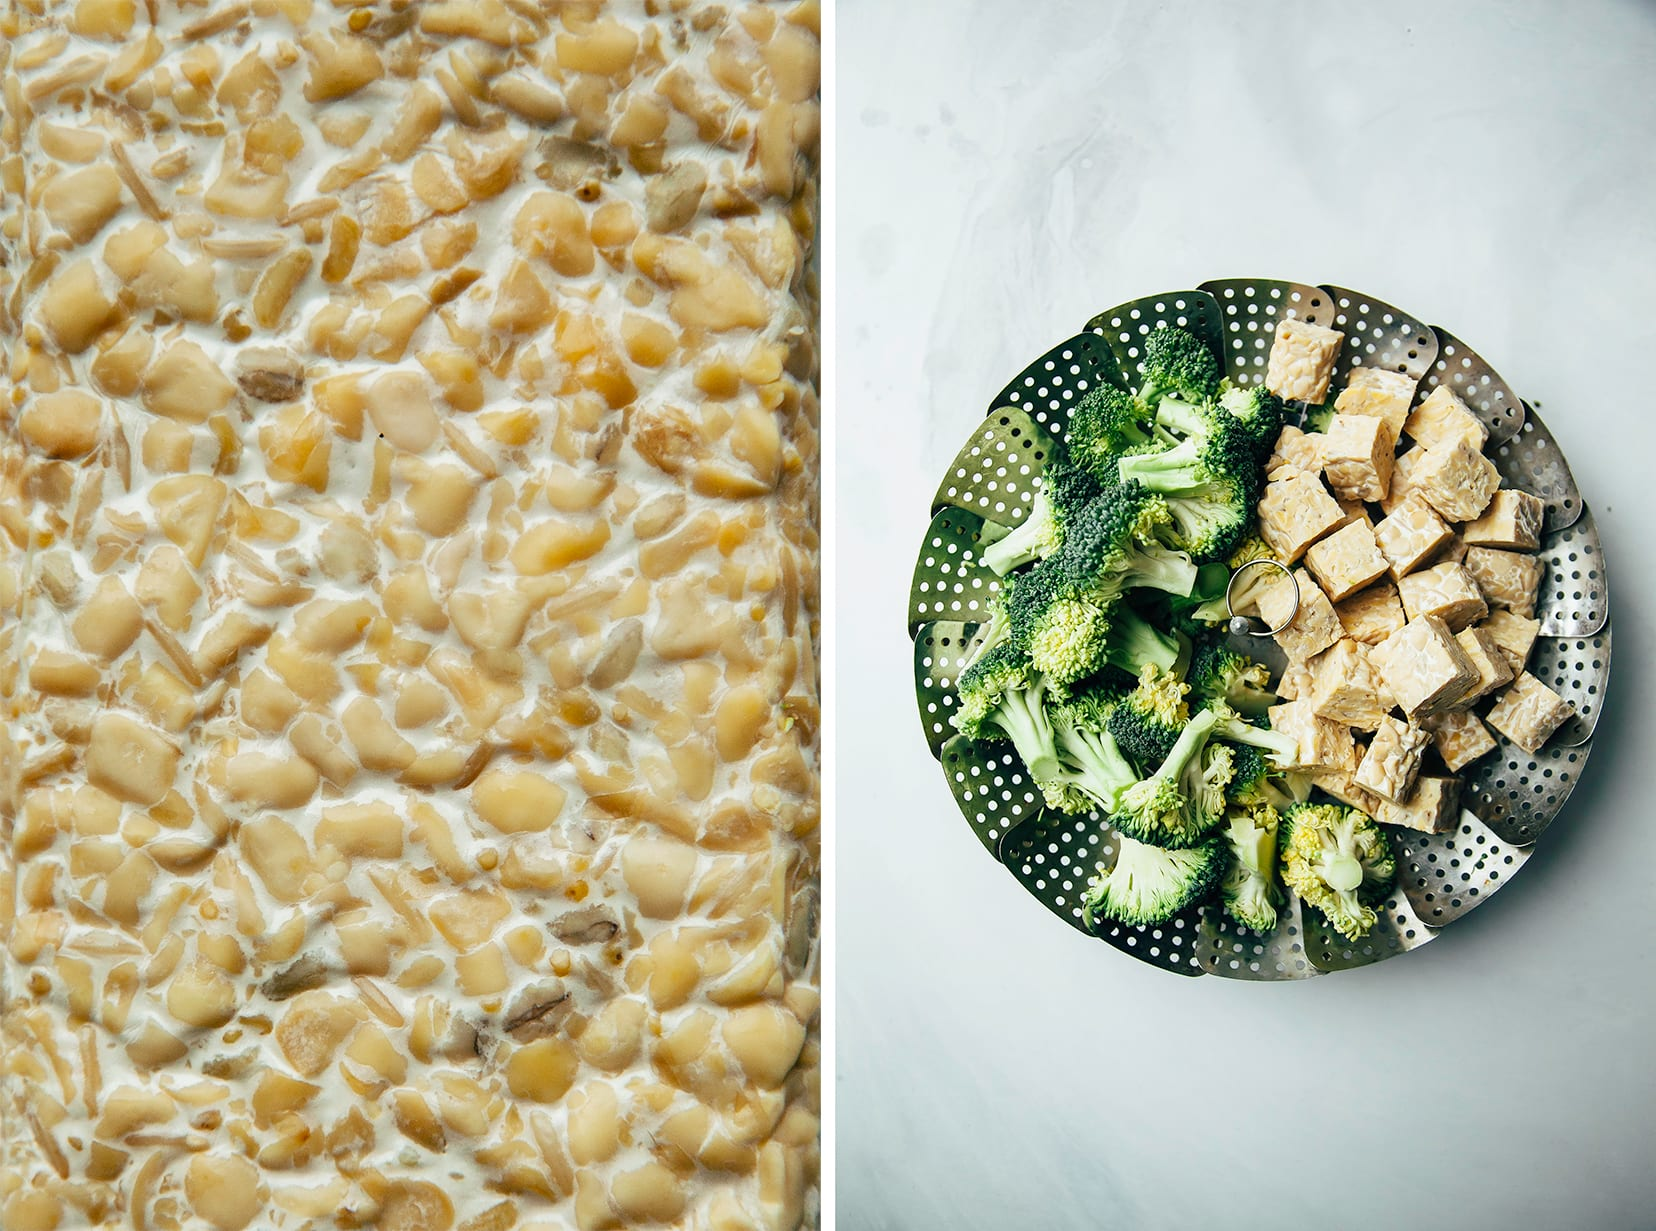 Two photos: An up close shot of a cake of tempeh + an overhead shot of a stainless steel steamer basket with broccoli and cubed tempeh on it.